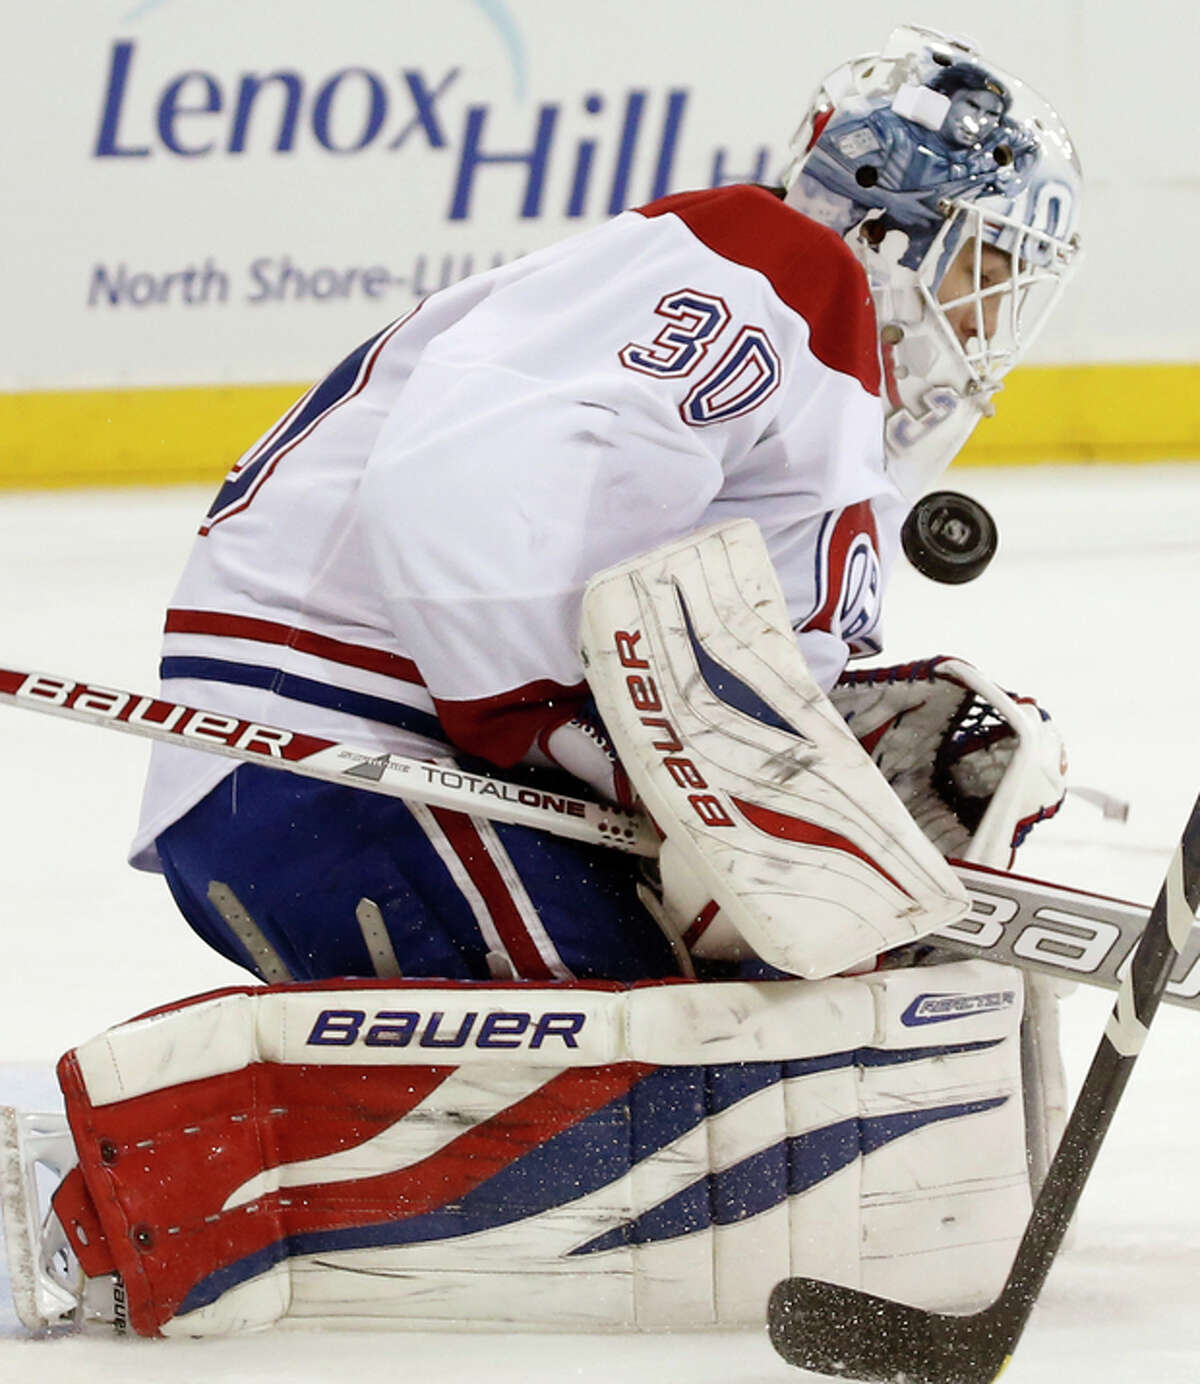 Montreal Canadiens goalie Peter Budaj of the Czech Republic makes a save in the second period of their NHL hockey game at Madison Square Garden in New York, Monday, Oct. 28, 2013. (AP Photo/Kathy Willens)